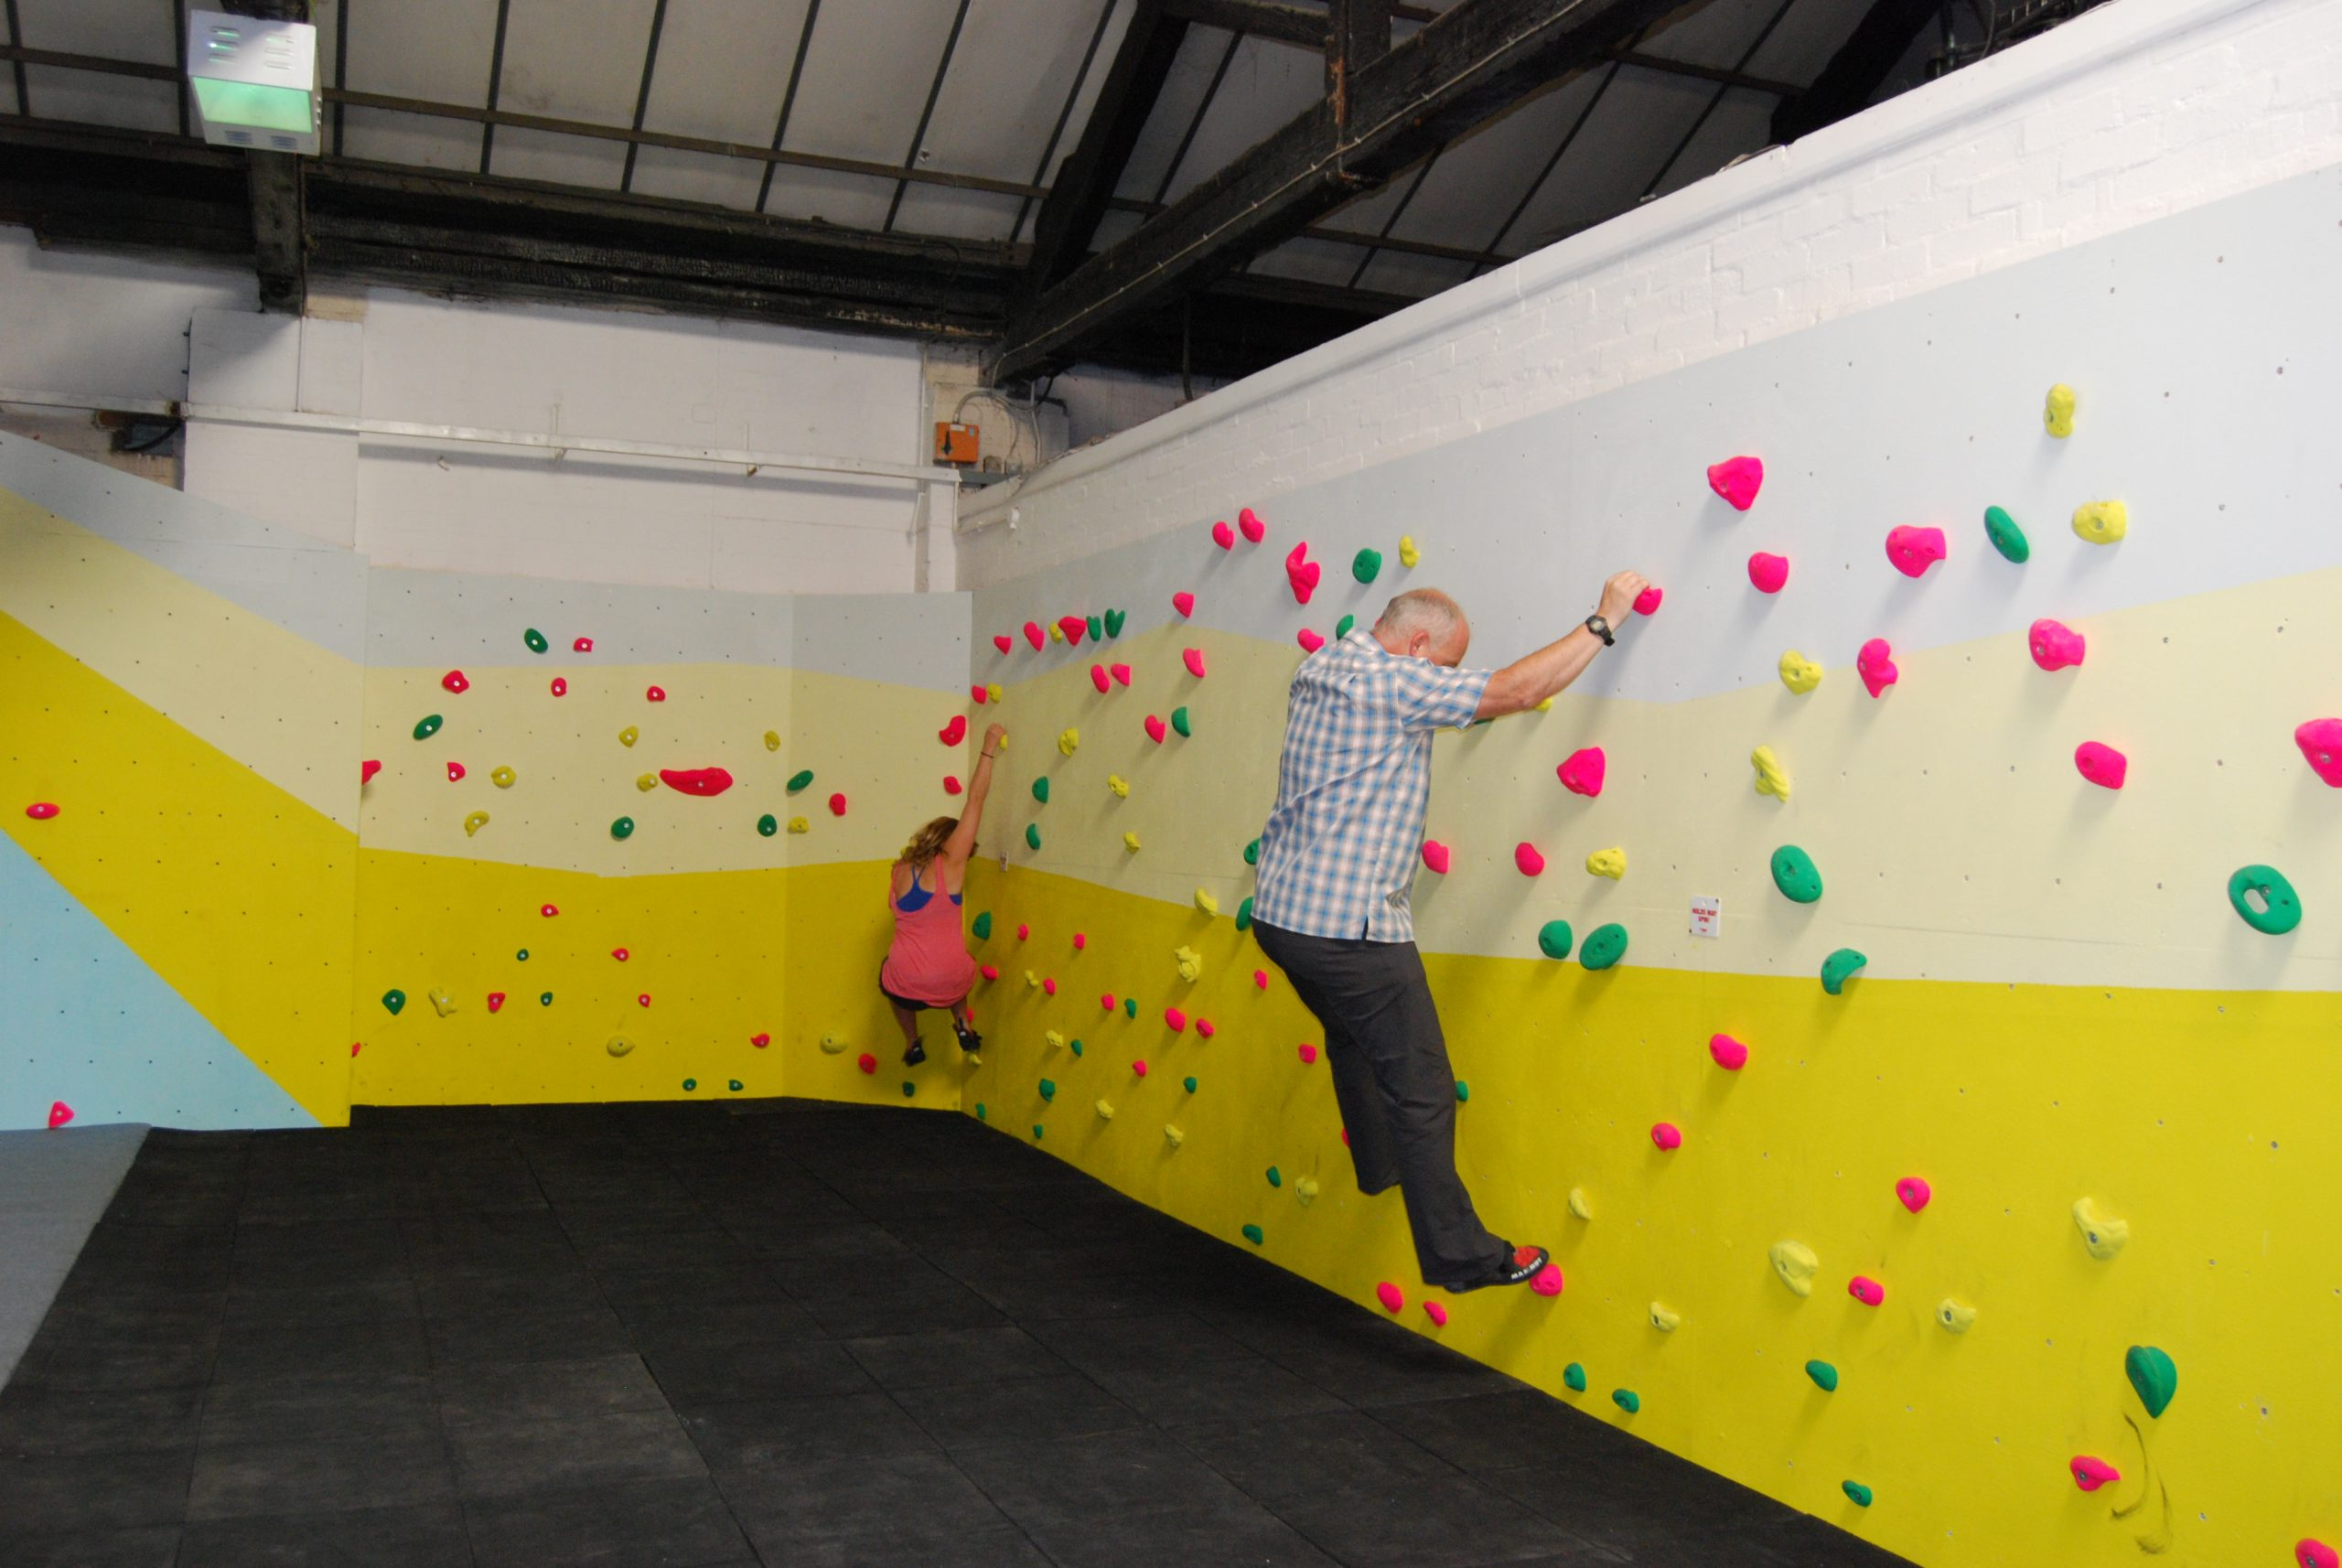 Warm-Up Area/ Traverse Wall